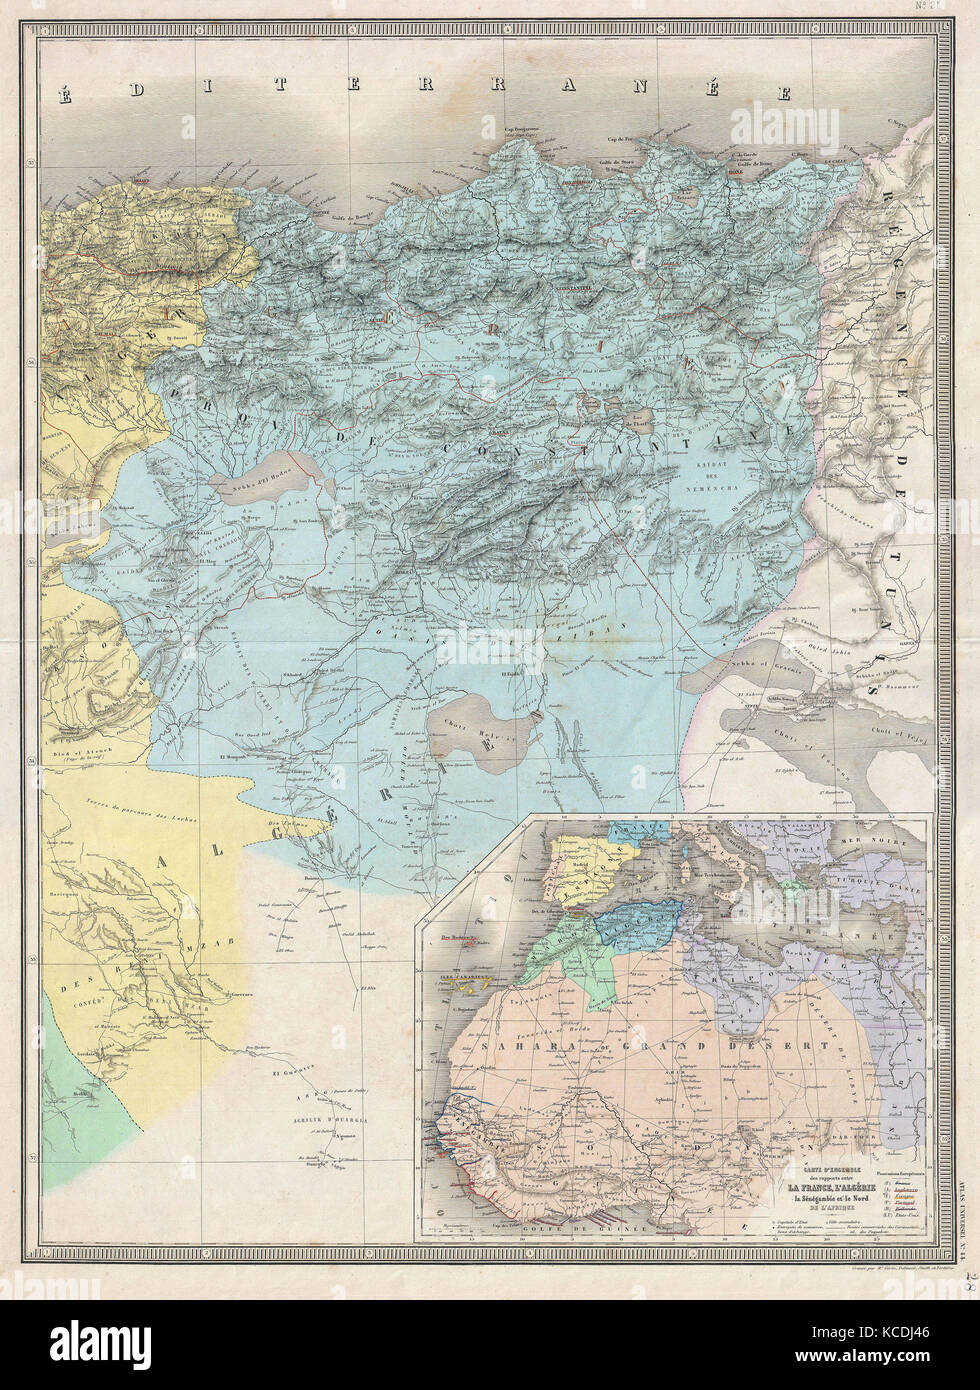 1857 Dufour Map of Constantine Algeria Stock Photo Royalty Free